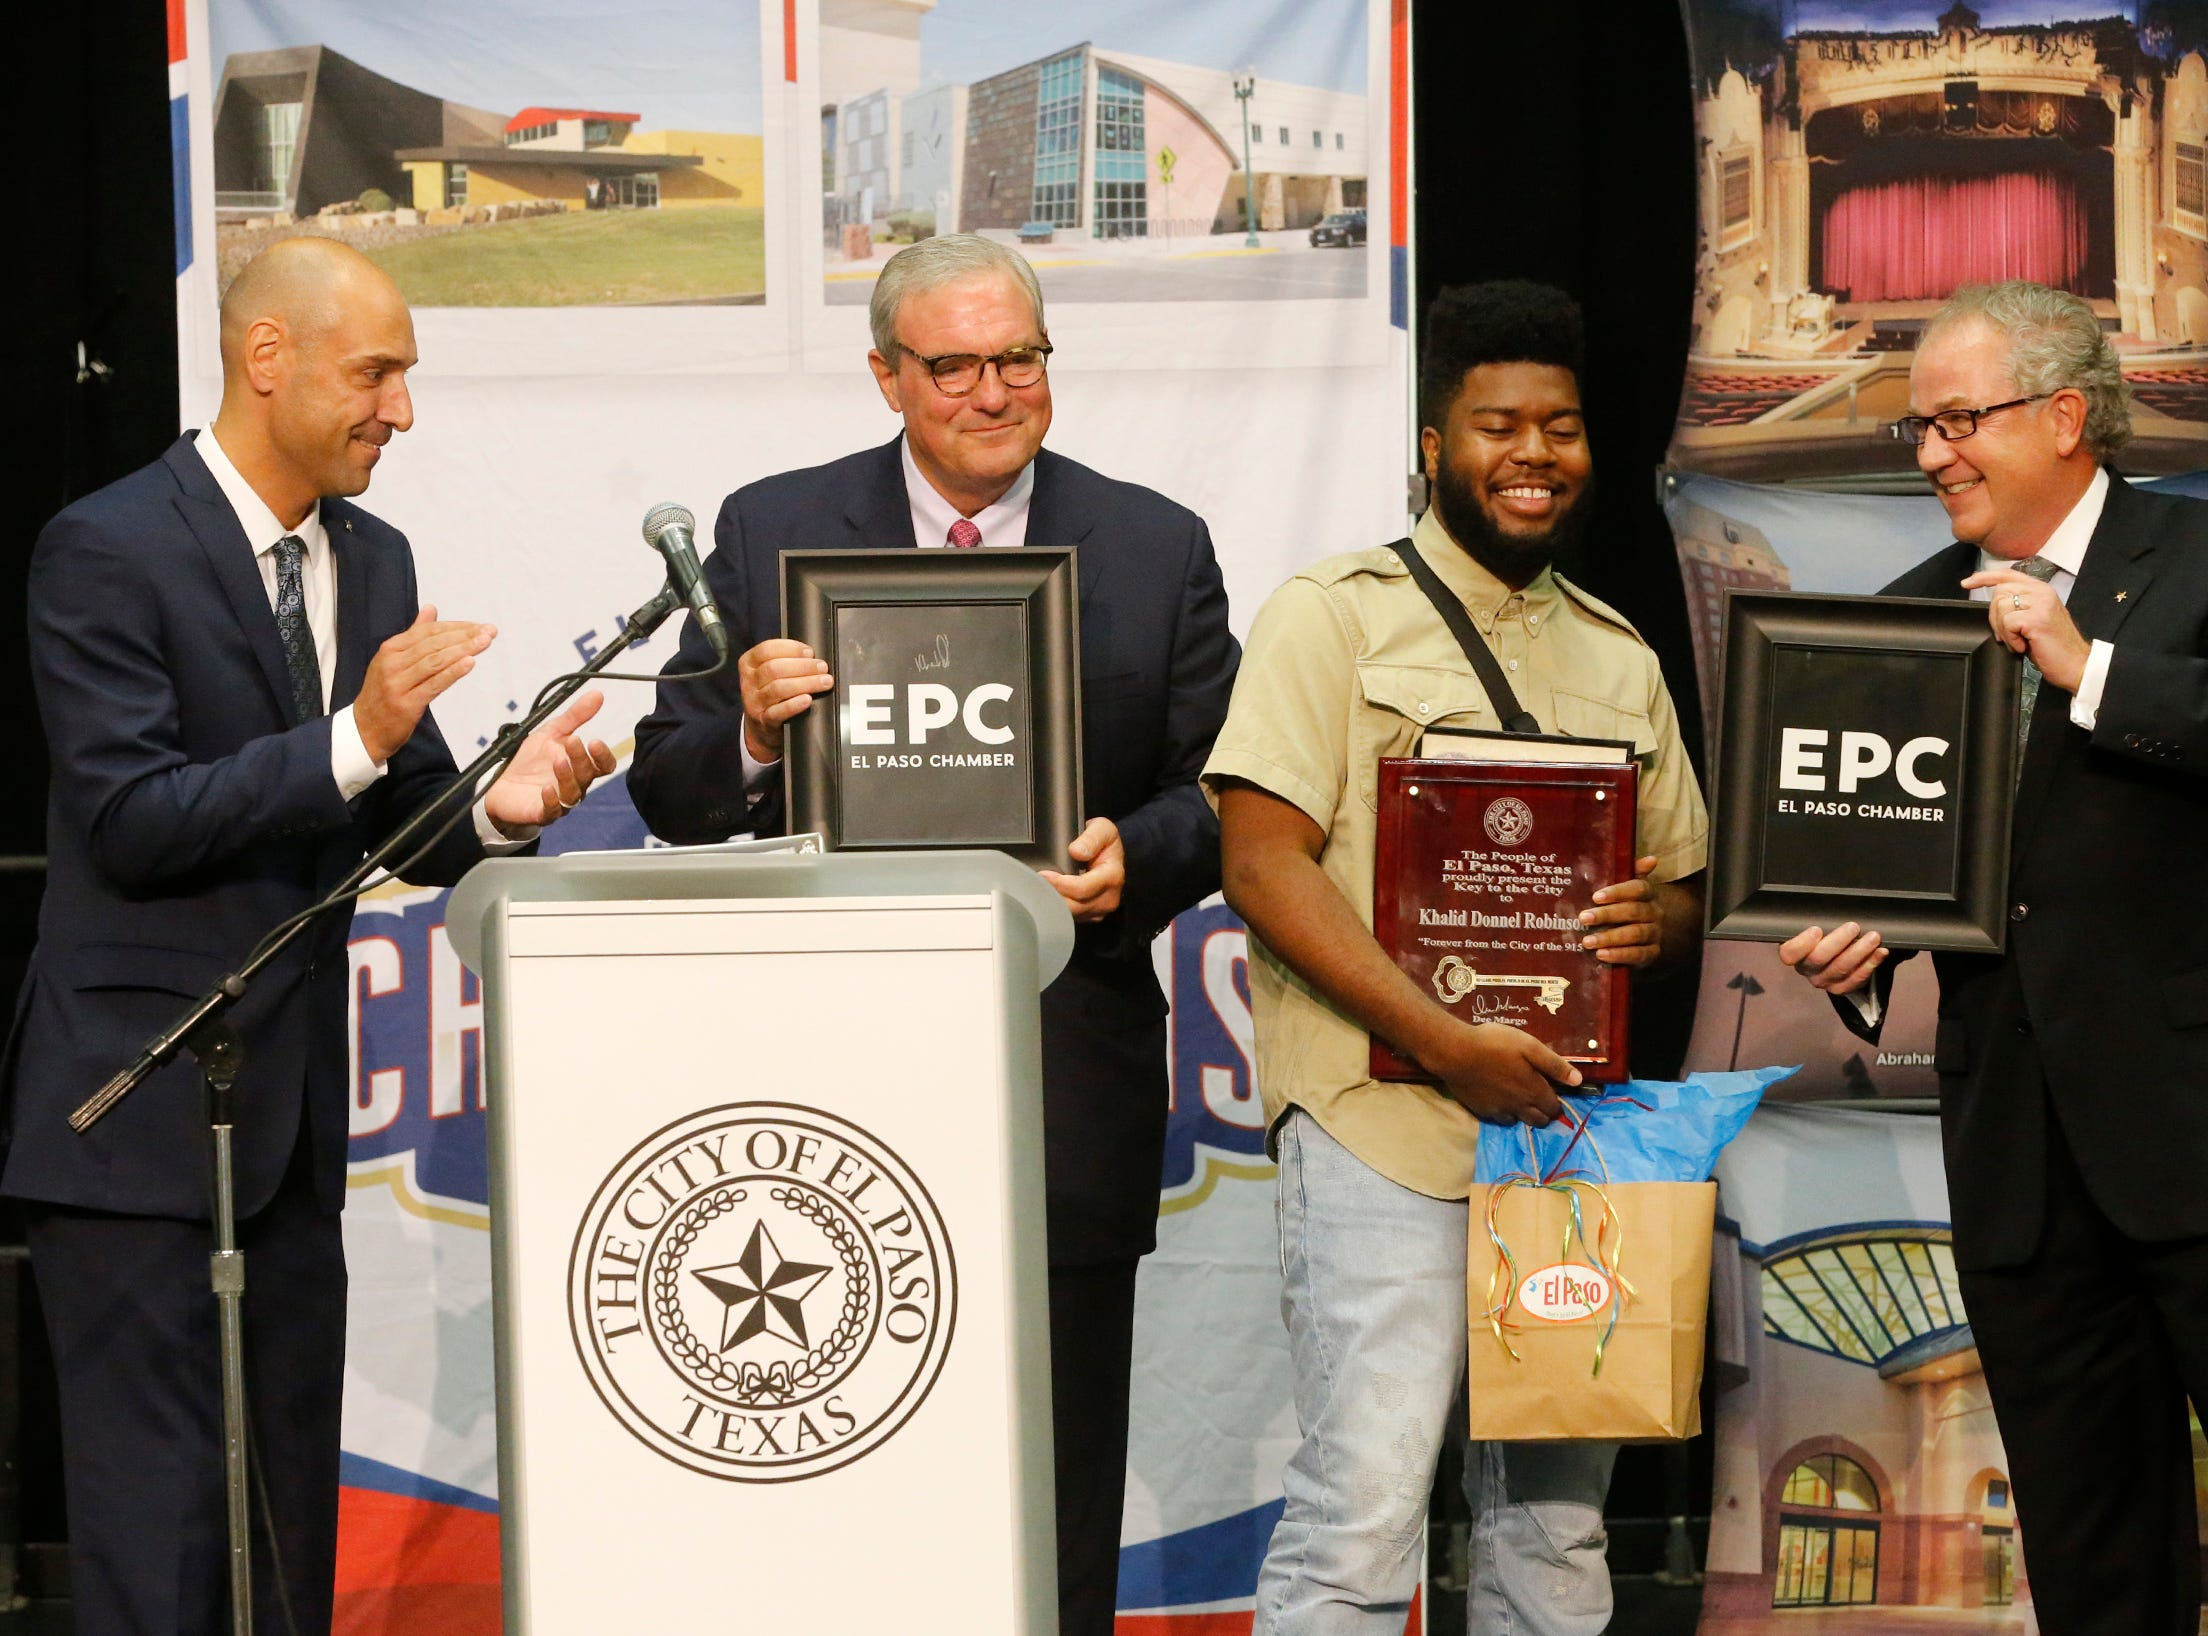 Recording artist and El Pasoan Khalid along with El Paso Mayor Dee Margo (second from left) and ElPaso Chamber President and CEO David M. Jerome gives Khalid some gifts from the chamber shortly after Mayor Margo presented Khalid with the Key to the City after delivering his first State of the City address.